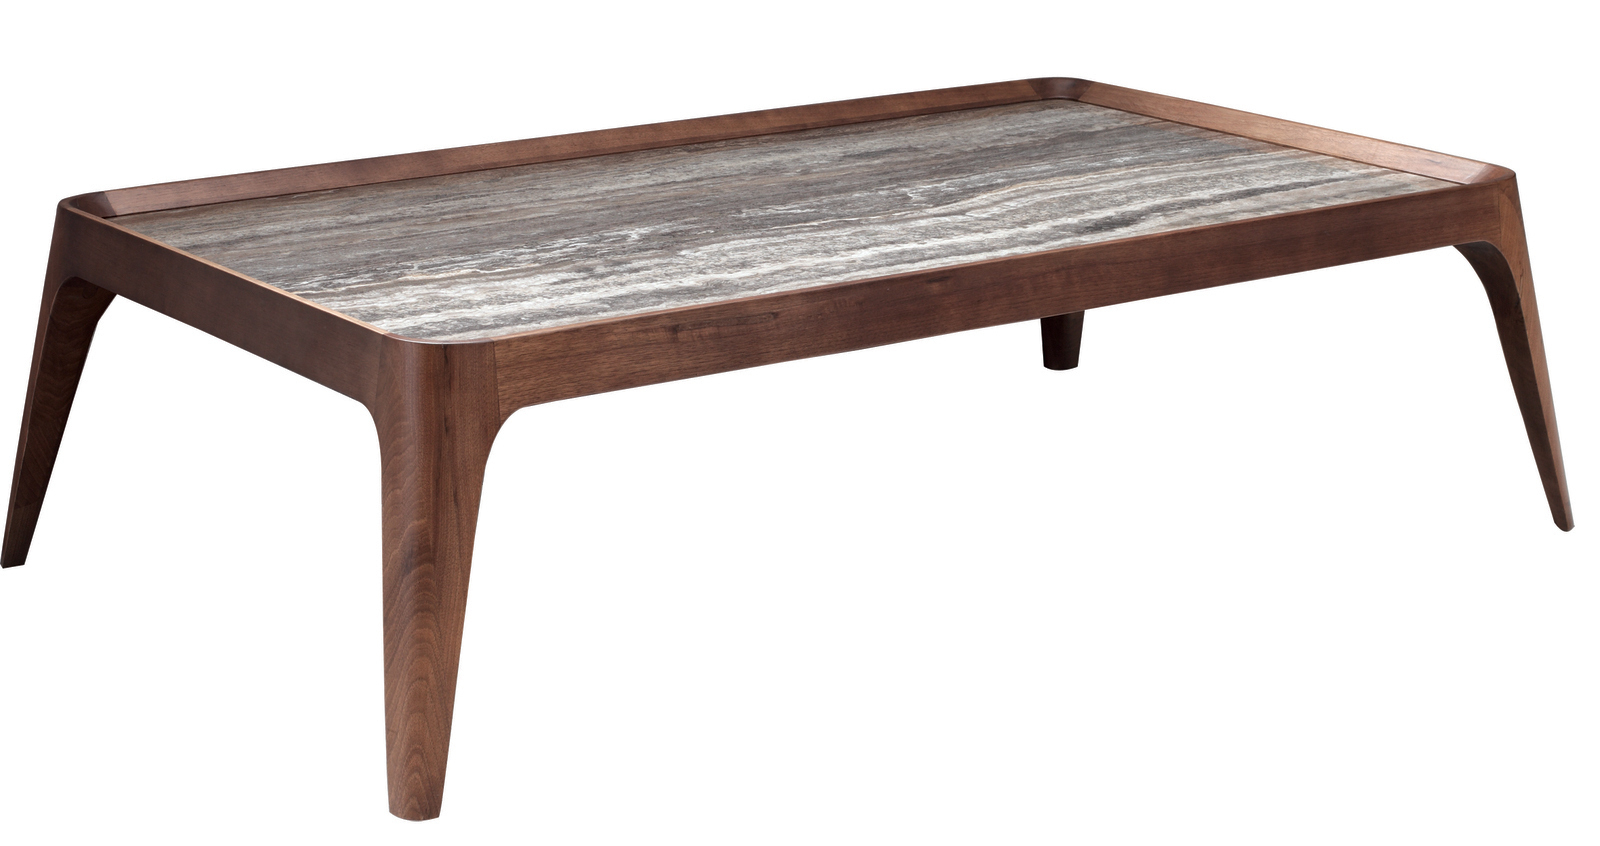 Recent Brisbane Oval Coffee Tables Within Coffee Table Wood Designer Marble Contemporary Furniture Brisbane (Gallery 15 of 20)